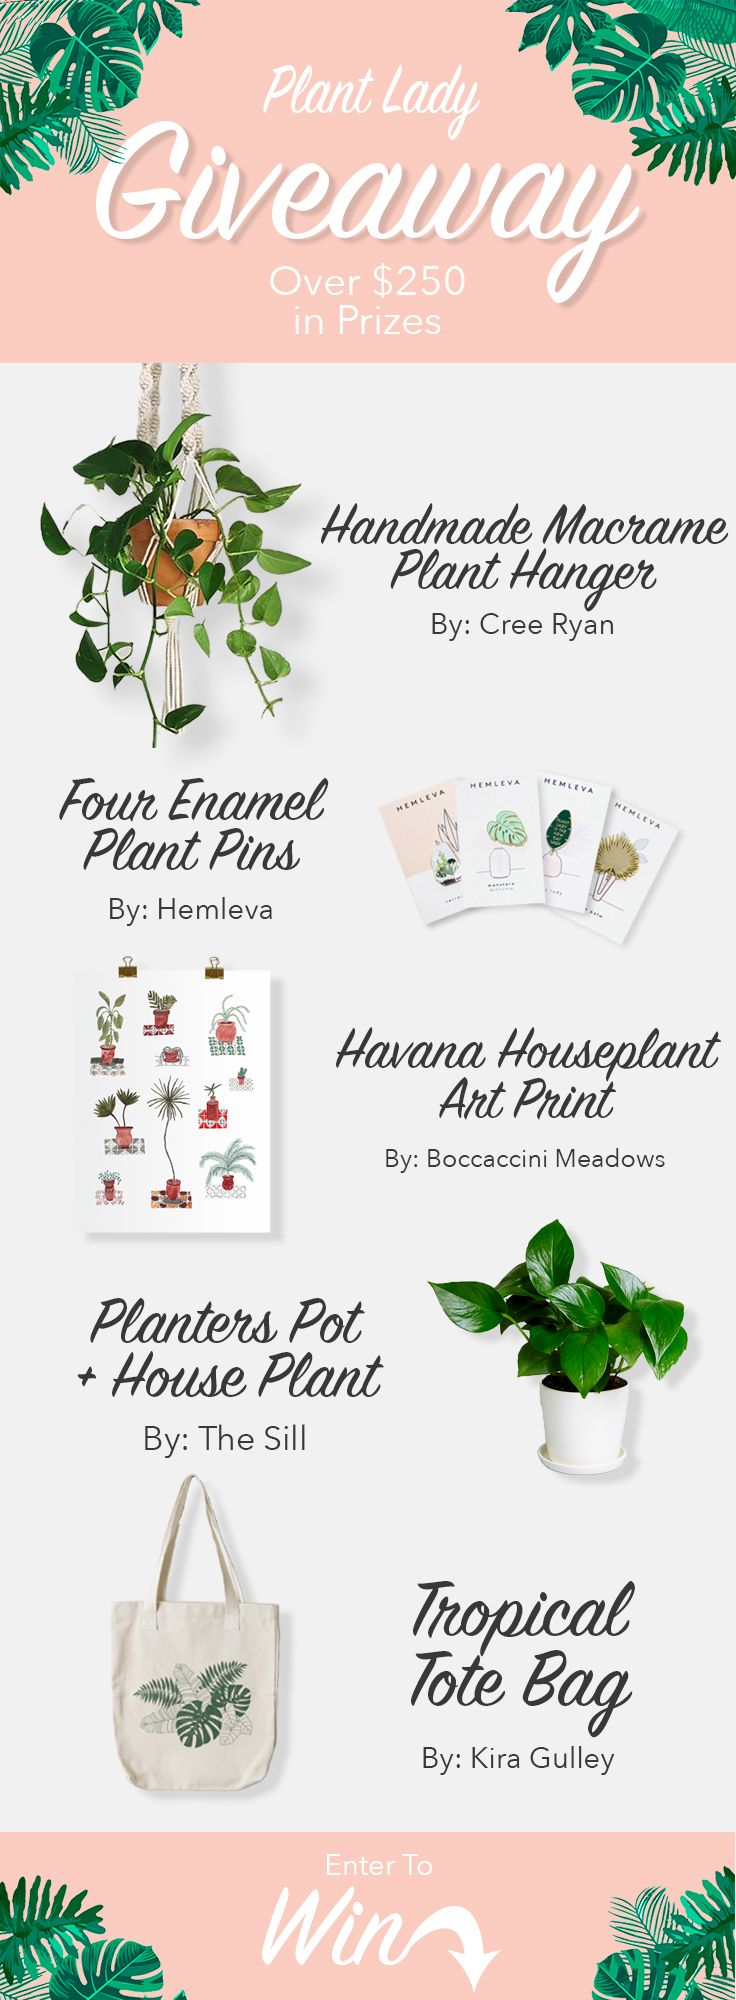 Plant Lady Giveaway! Over $250 in prizes! #plantlady #giveaway